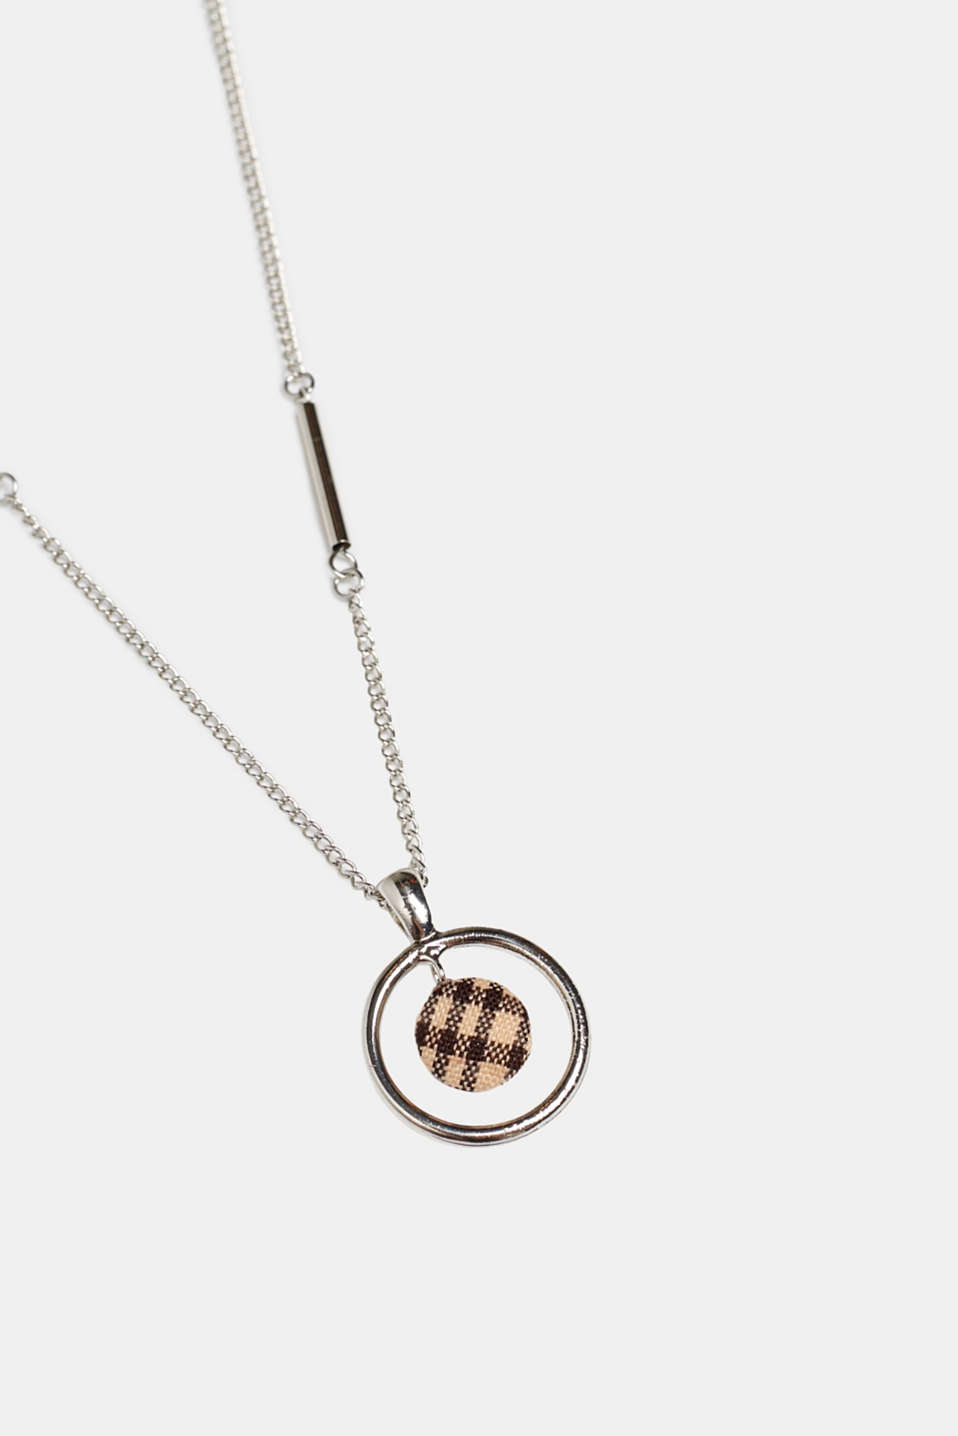 Esprit - Necklace with a check fabric pendant